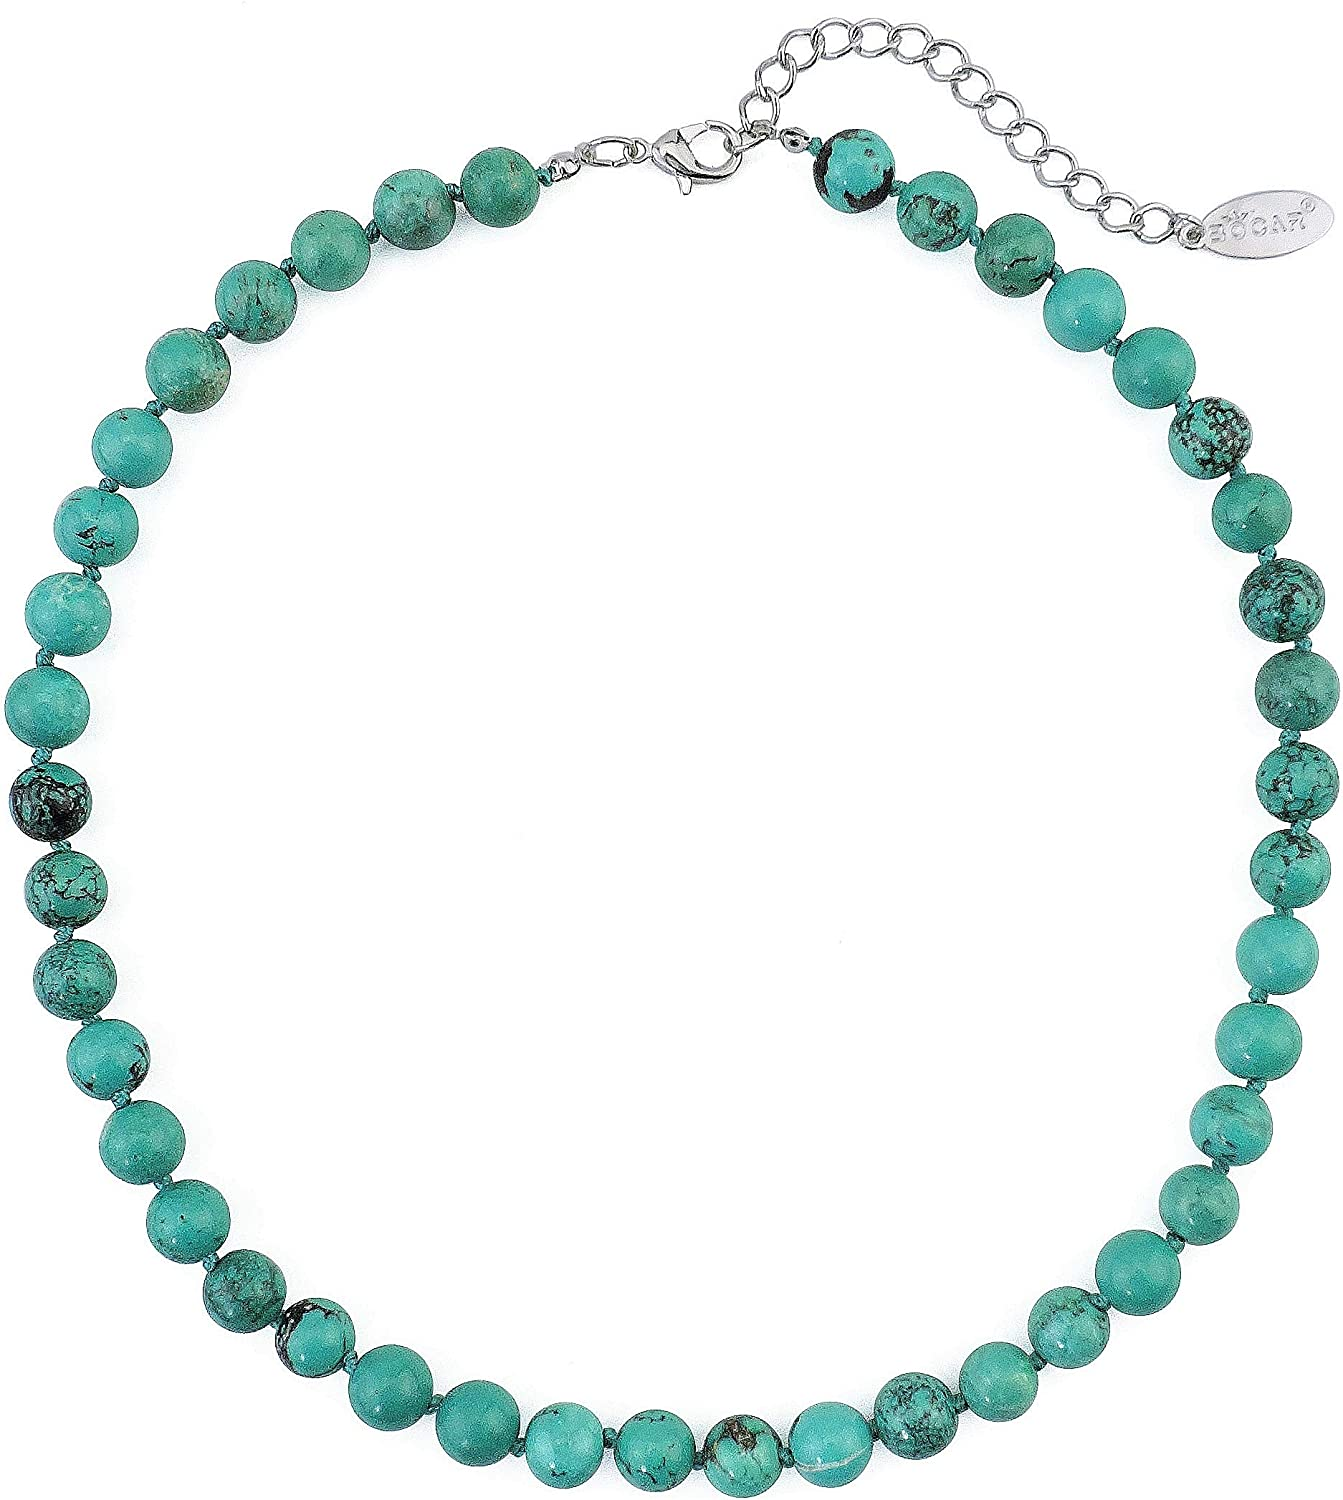 Bocar Natural Stone Beads Collar Necklace for Women Gift